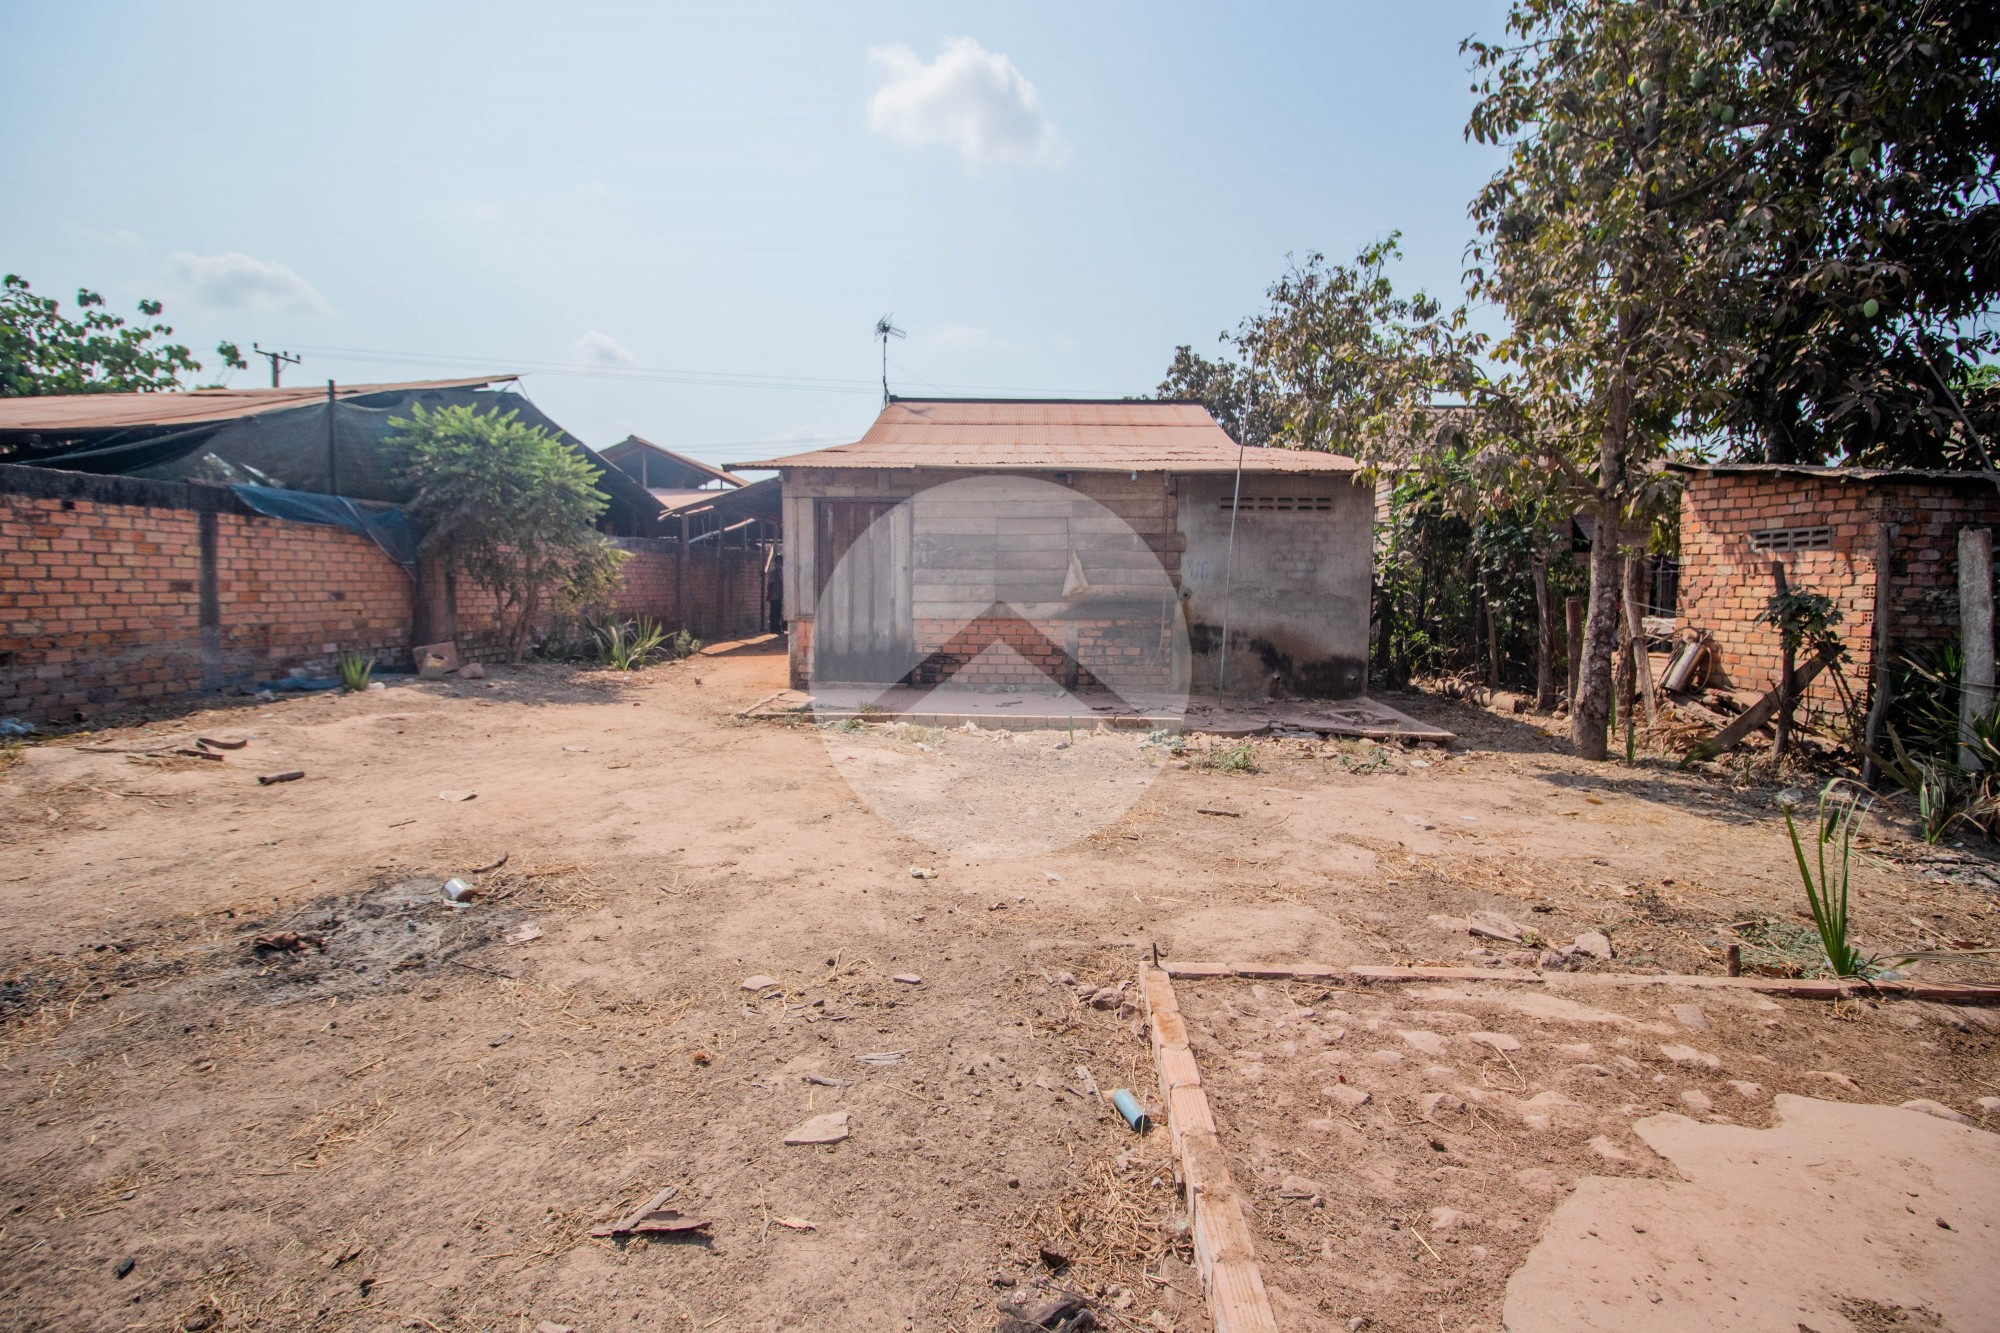 385 Sqm Residential Land For Sale - Bakong, Siem Reap